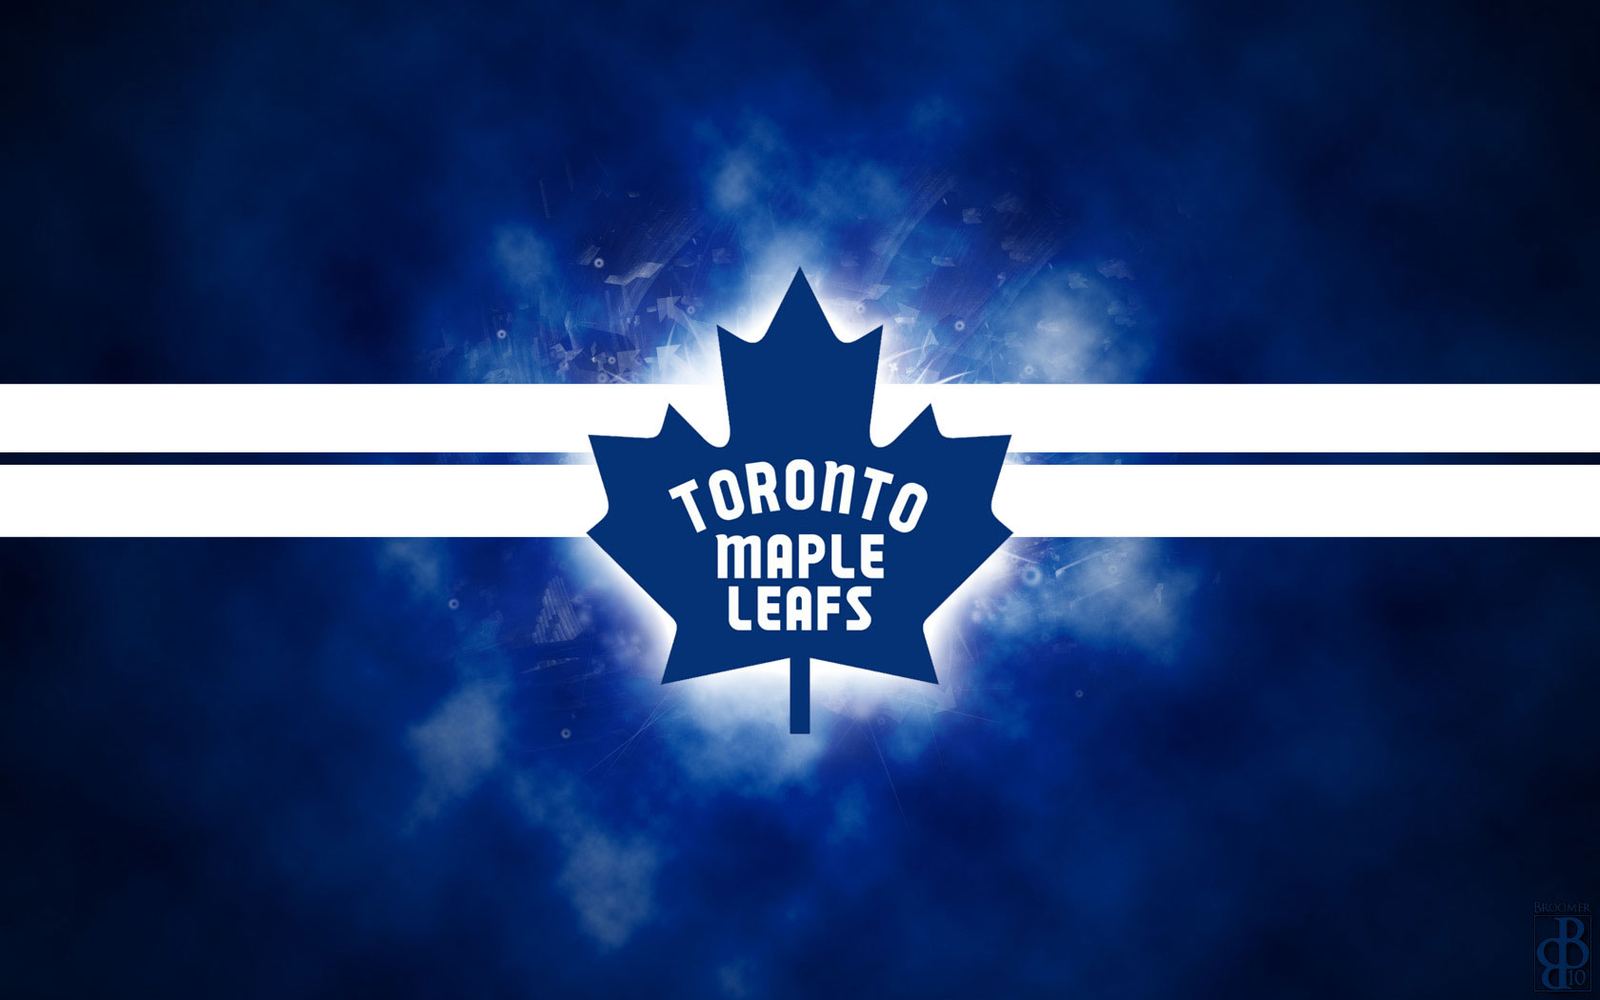 Pin Nhl Wallpapers Toronto Maple Leafs Team 1920x1200 Wallpaper on 1600x1000